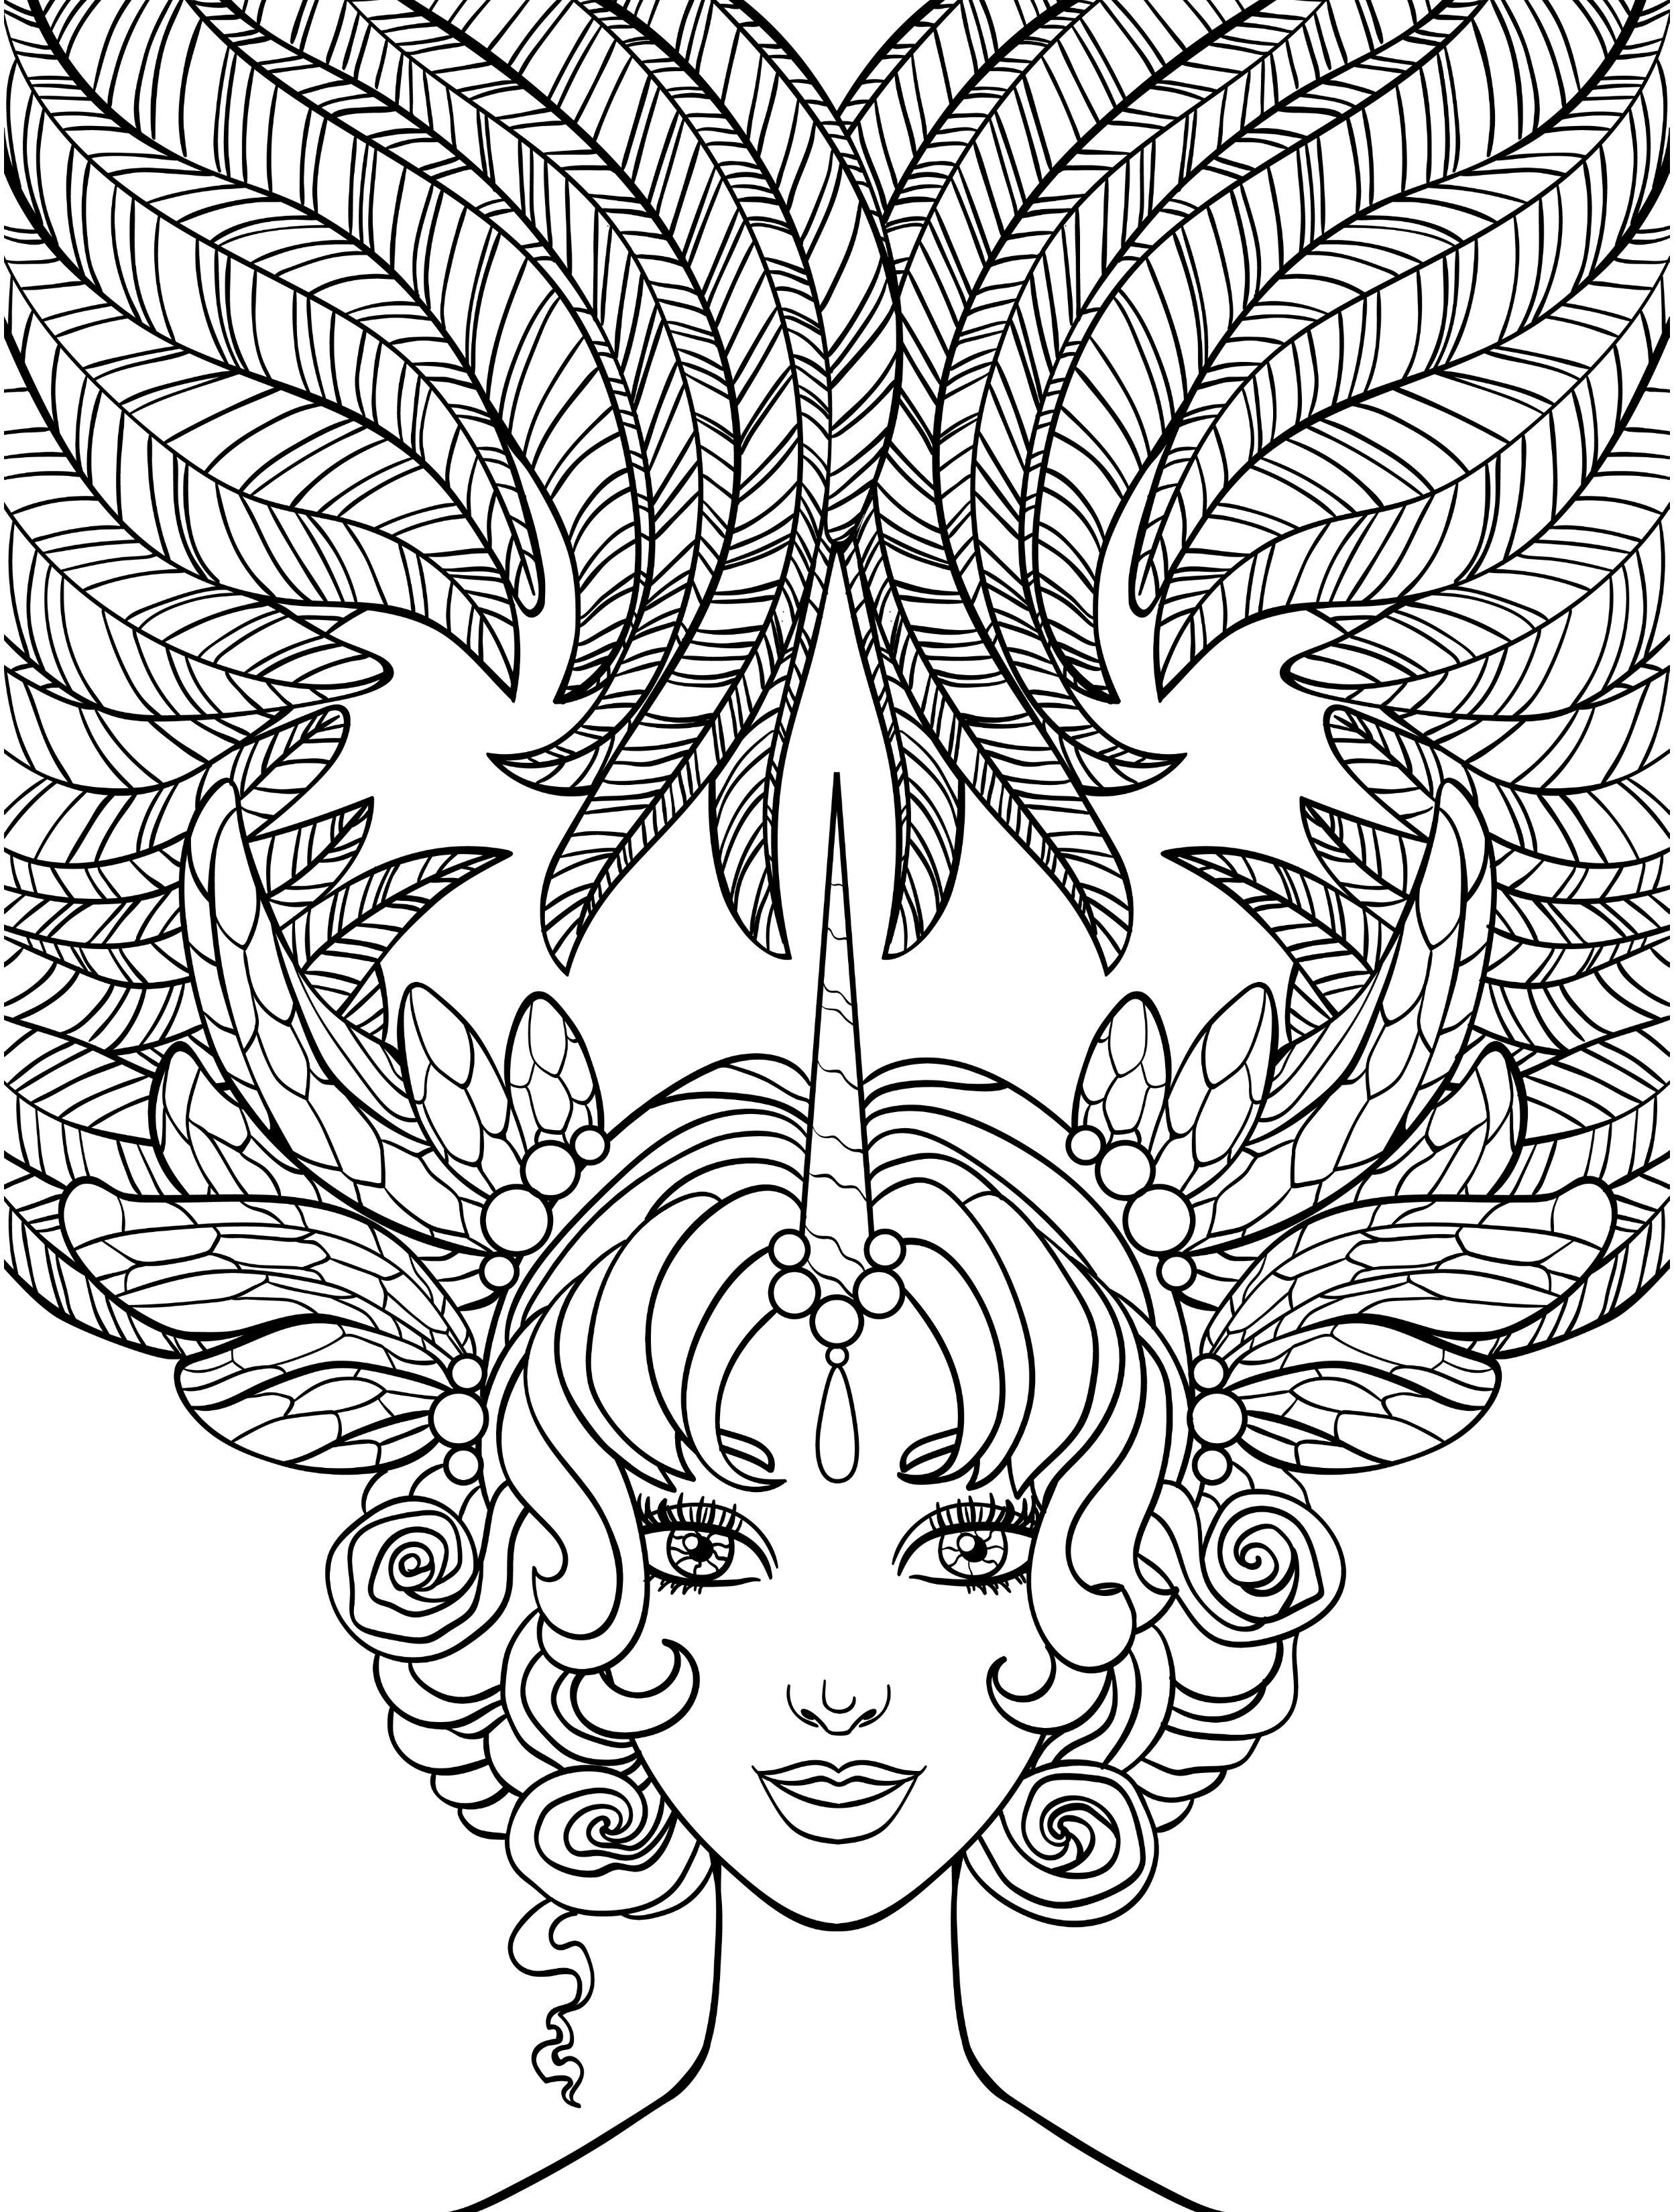 10 Crazy Hair Adult Coloring Pages | coloring pages | Pinterest ...